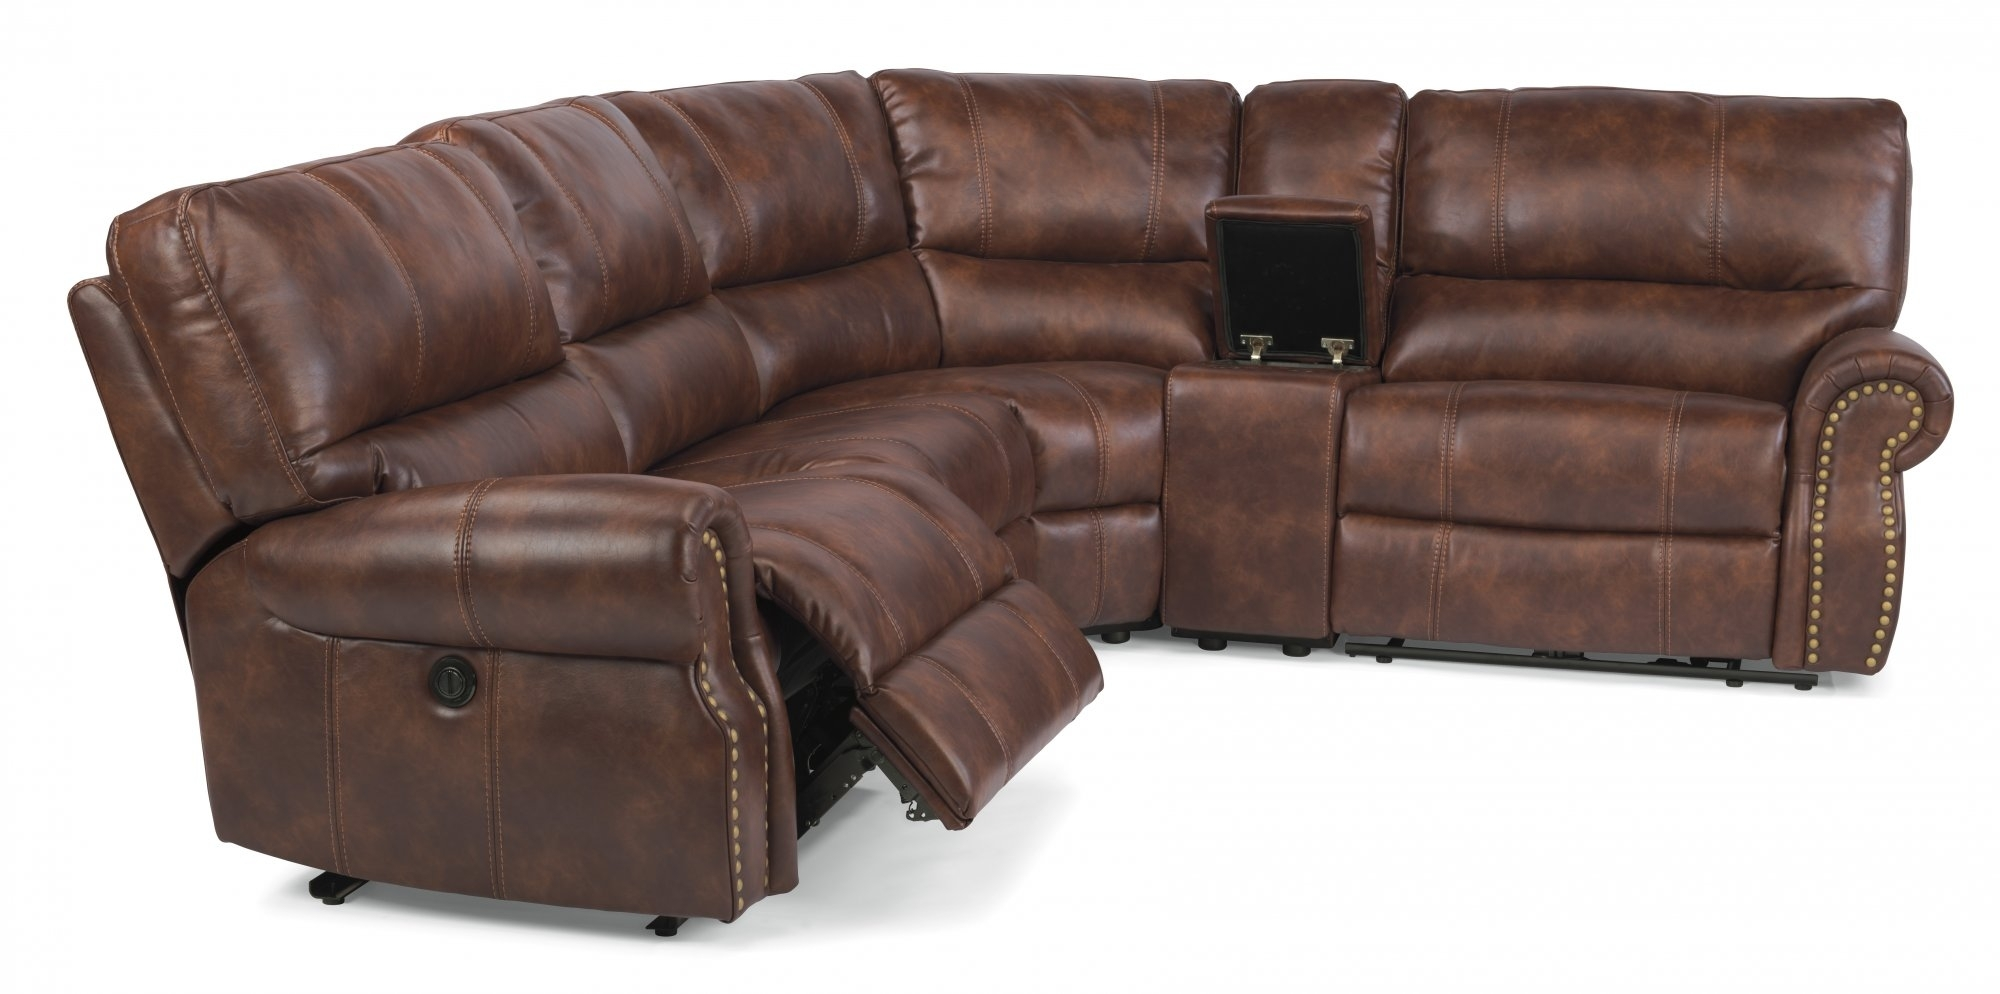 Modern Leather Sectional Sofa Recliners Brown Recliner Reclining for Sectional Sofas With Power Recliners (Image 5 of 10)